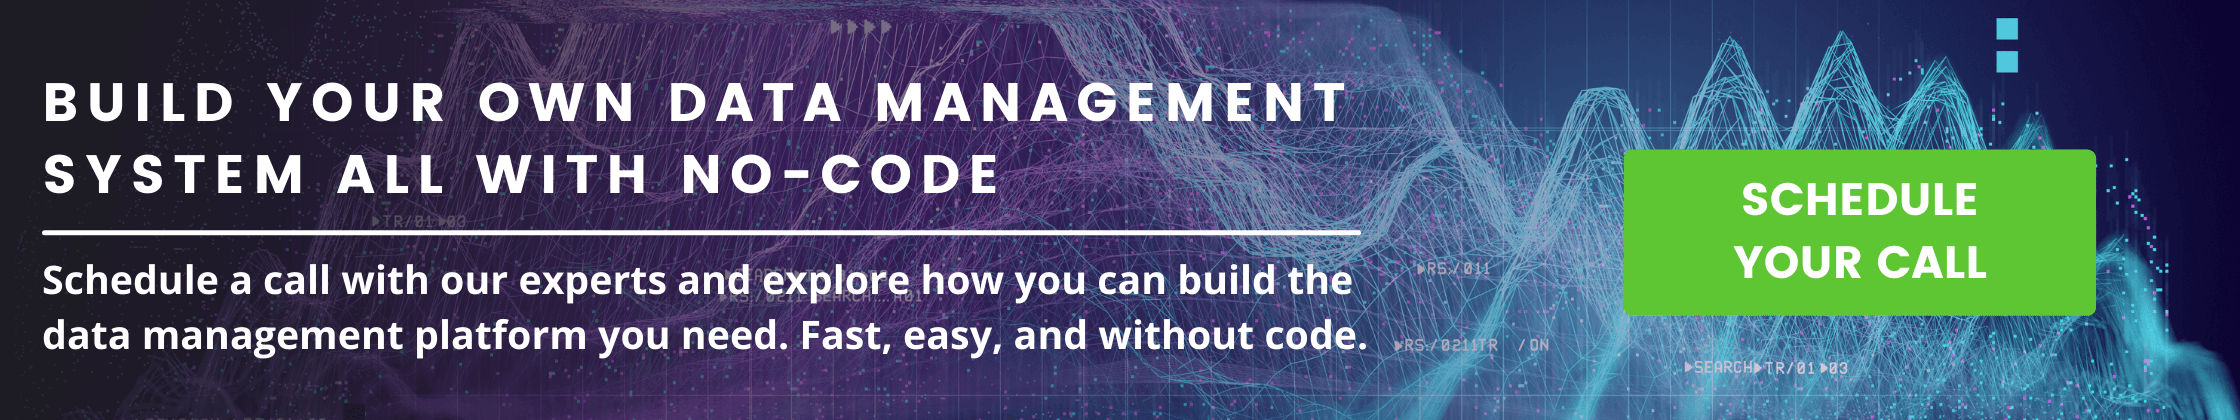 Build your own data management system